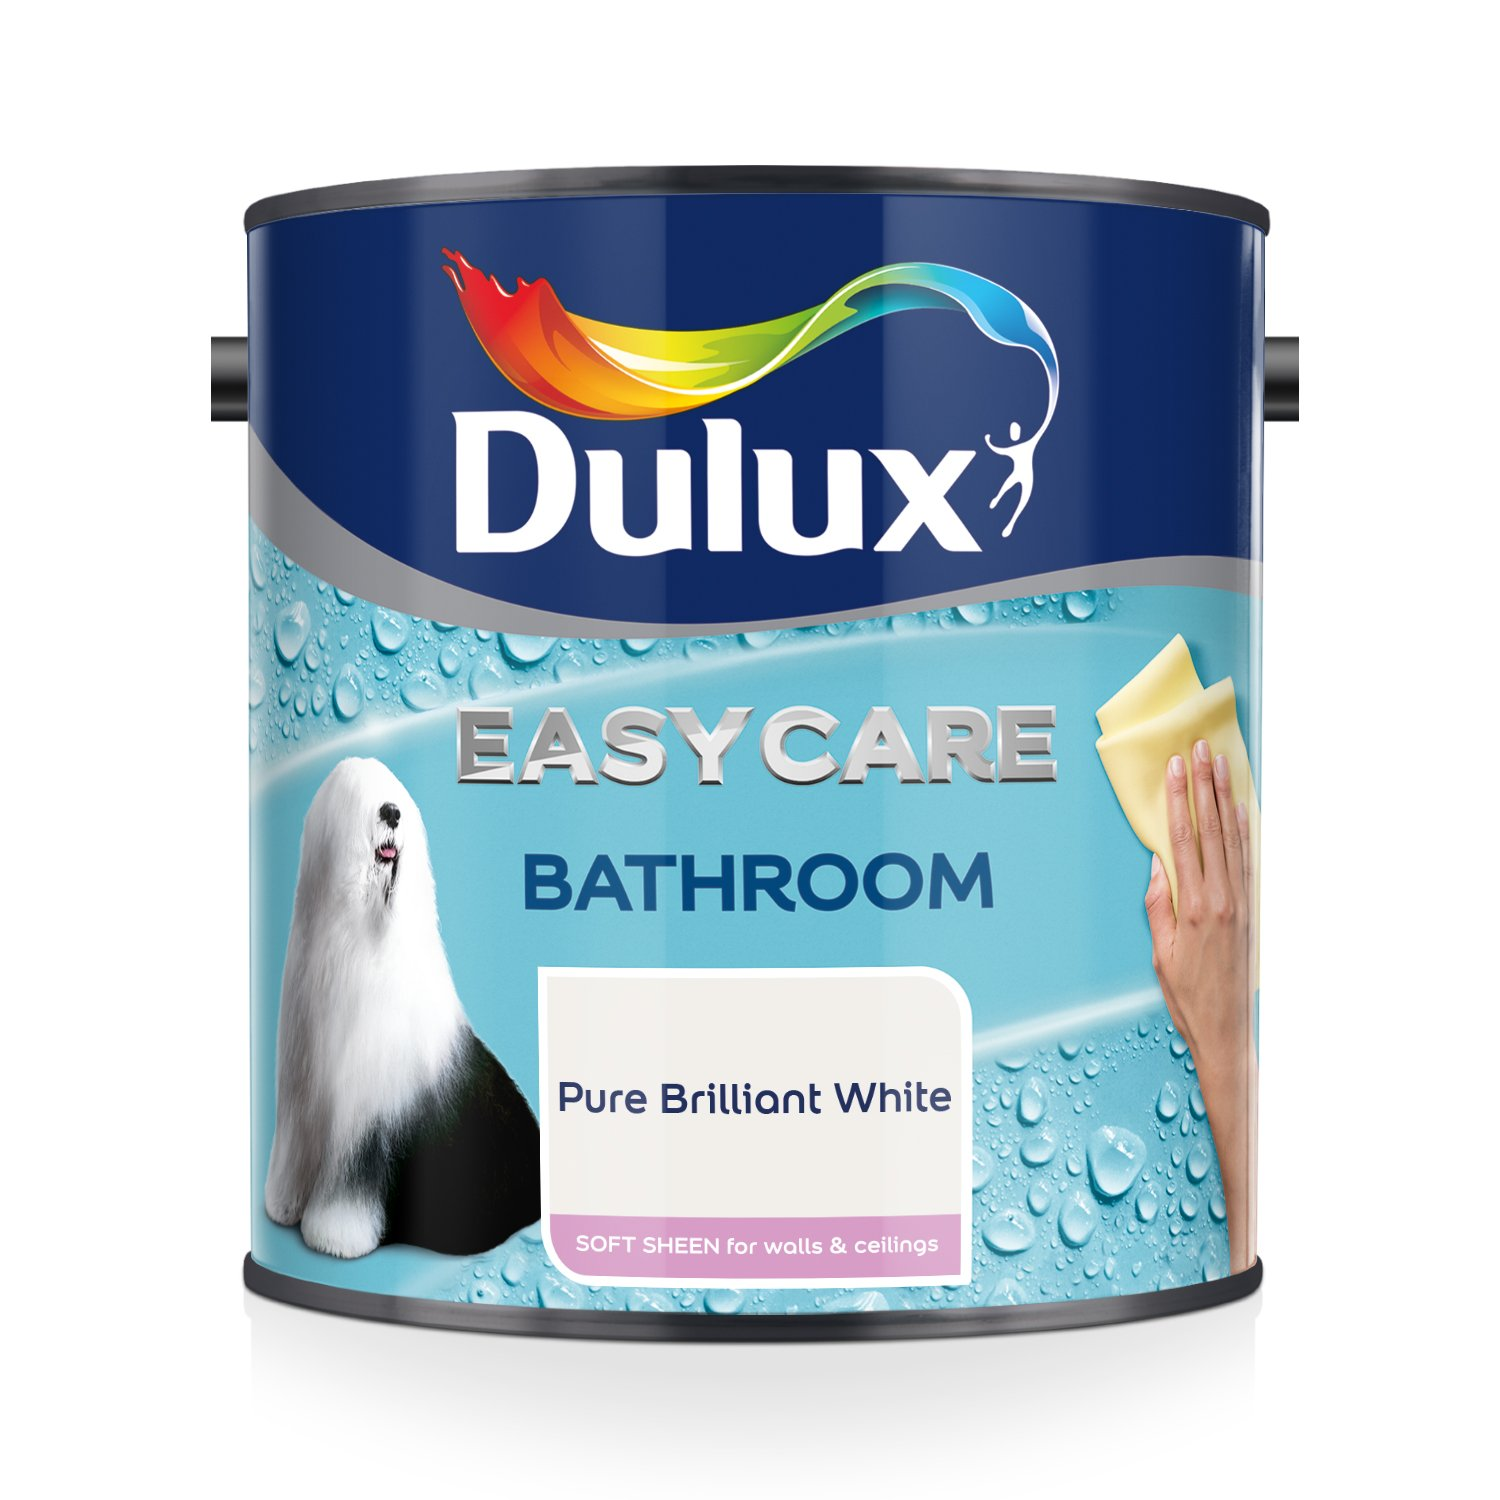 Dulux Easycare Bathroom Soft Sheen Paint, Pure Brilliant White 1L AkzoNobel 500001